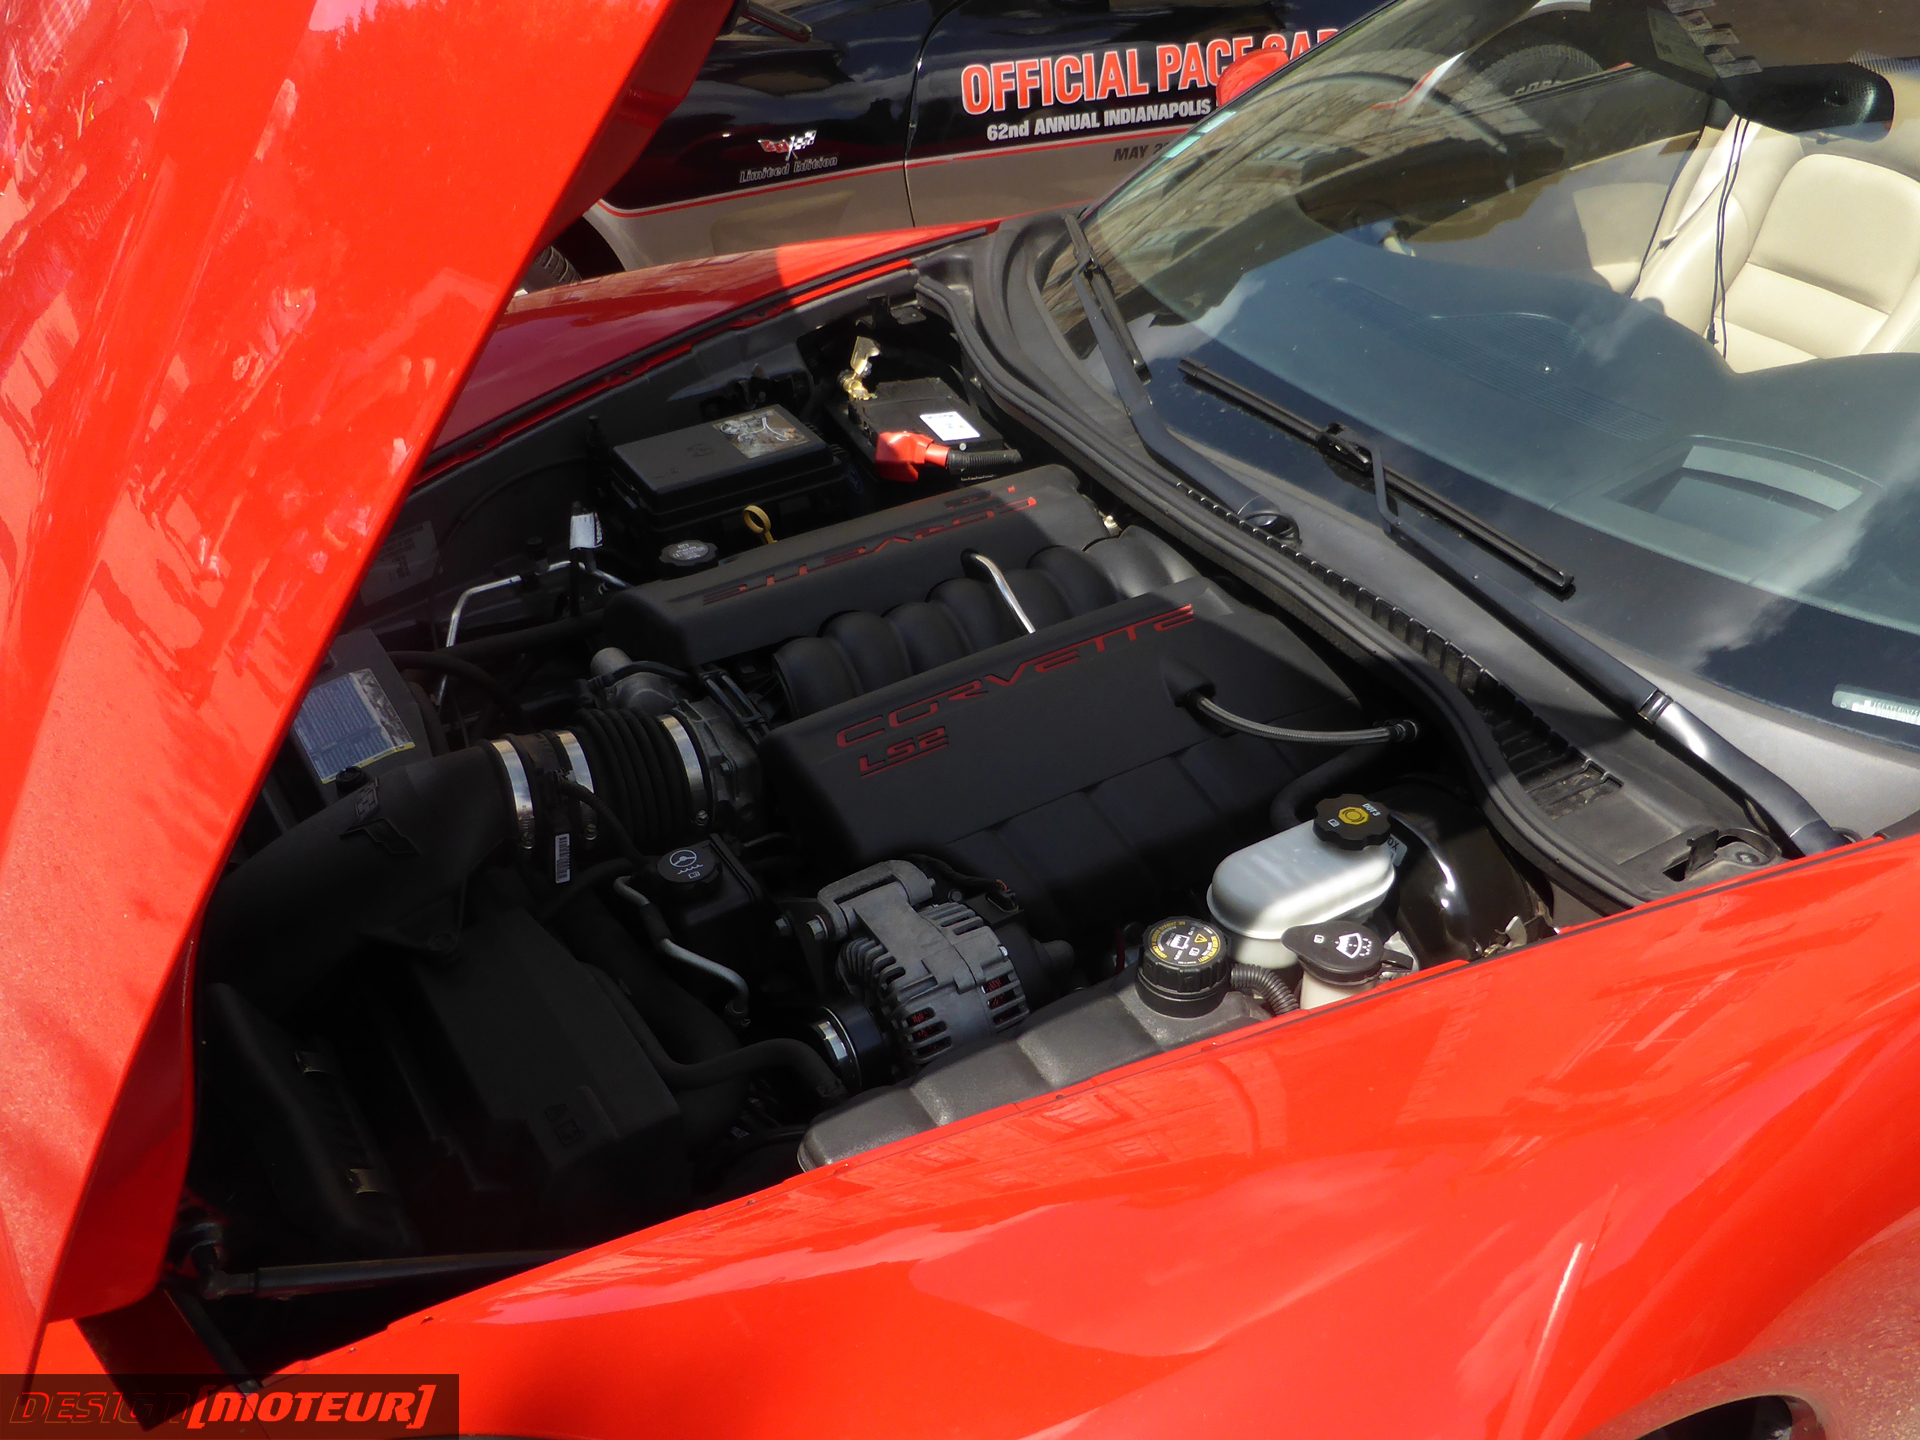 Chevrolet Corvette C6 - engine LS2 - under the hood - US Cars and Bikes 2019 - photo ELJ DESIGNMOTEUR